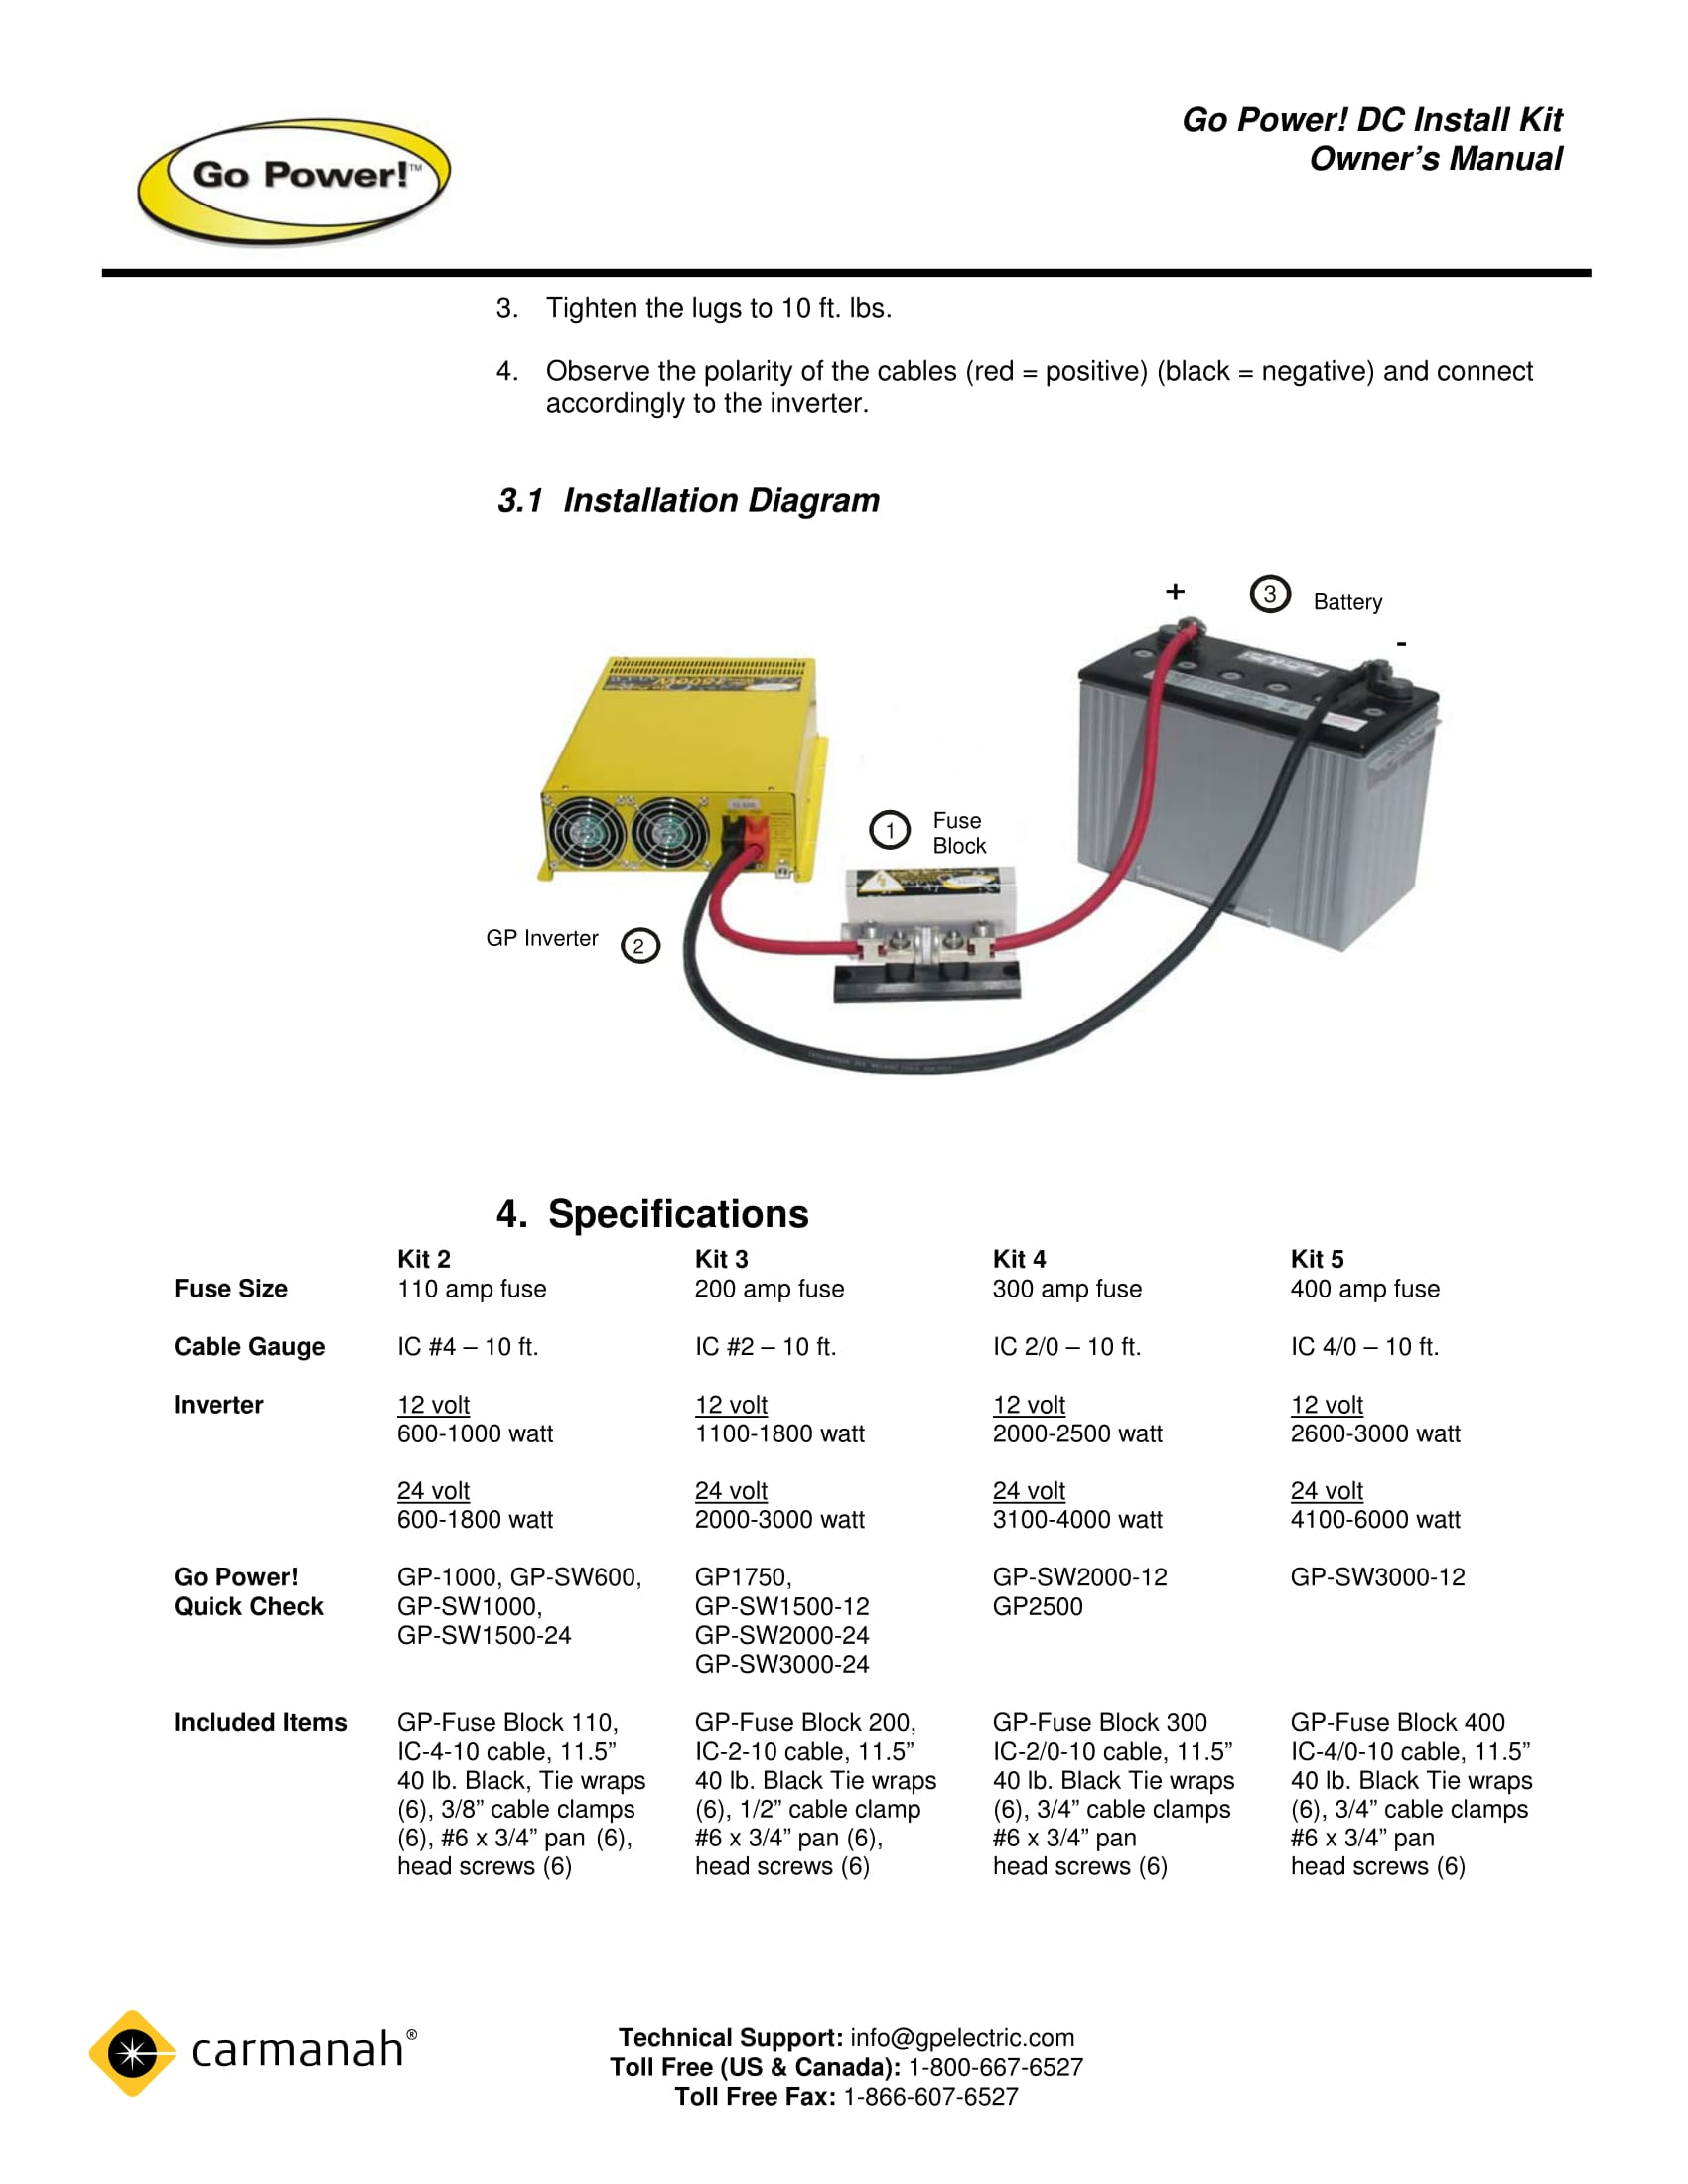 Inverter Fuse And Cable Install Kits 1100 1800 Watt 600 Amp Box General Block Size Wattage Amperage 1000 110 1500 200 2000 300